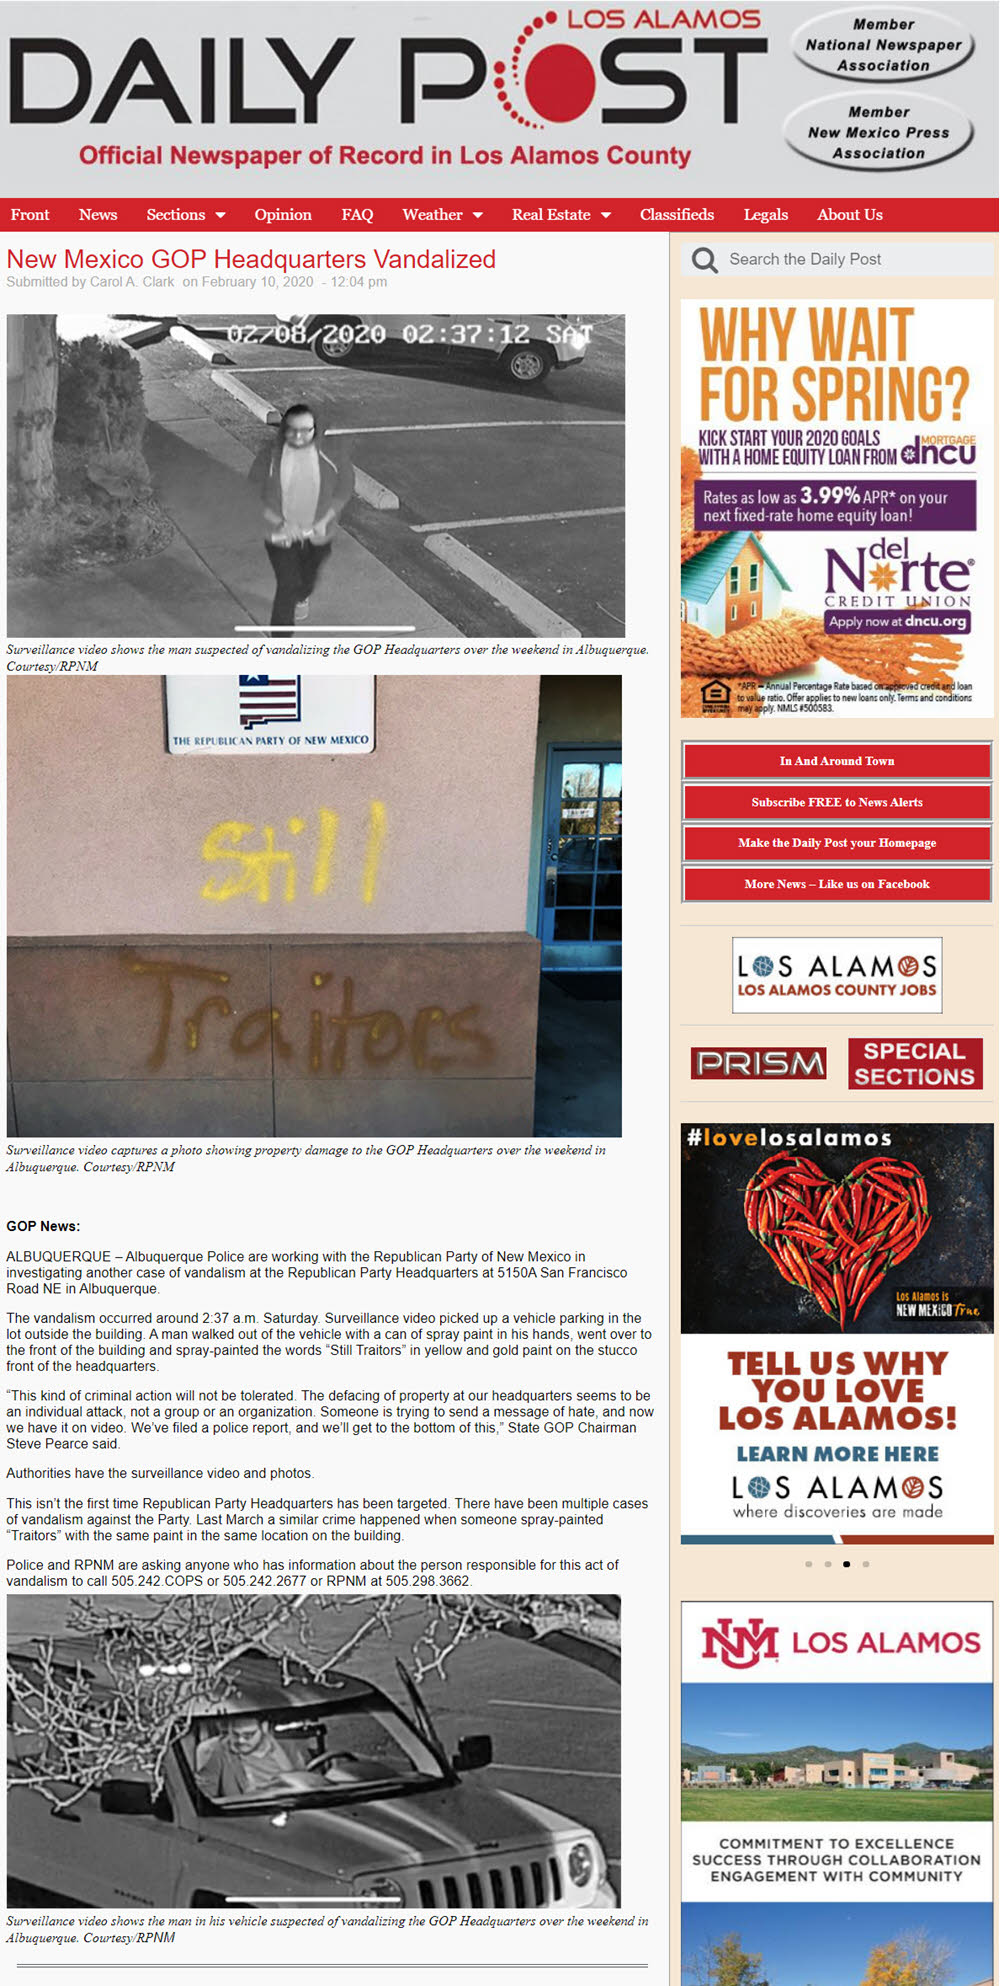 ladailypost-new-mexico-gop-headquarters-vandalized2-7106233